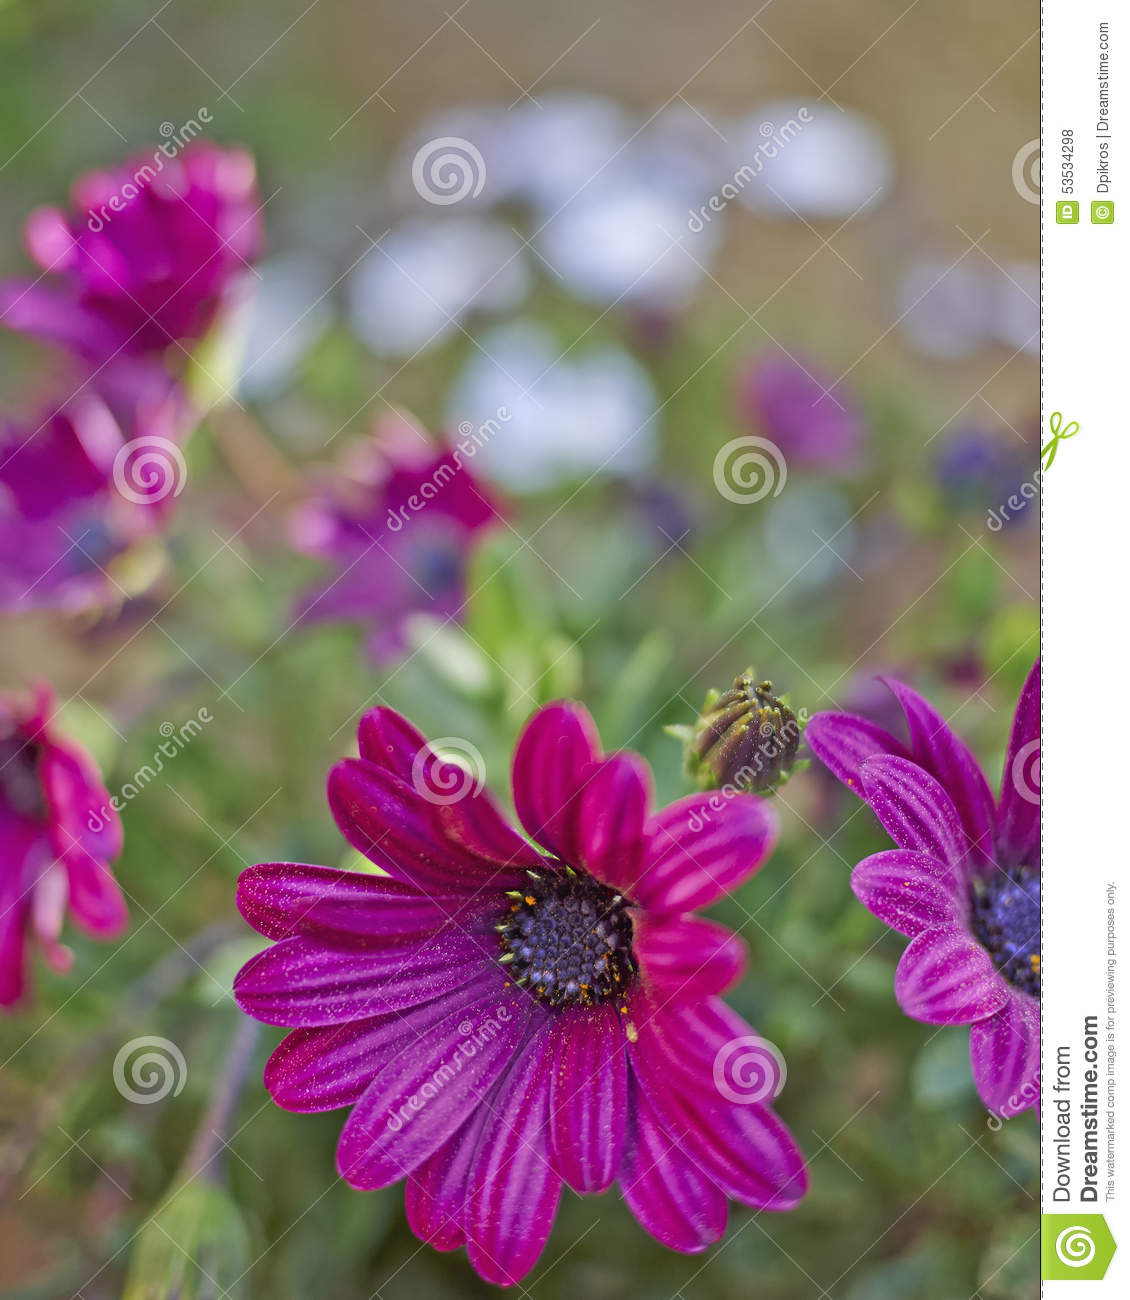 Margarita Flowers Closeup In The Garden Stock Image